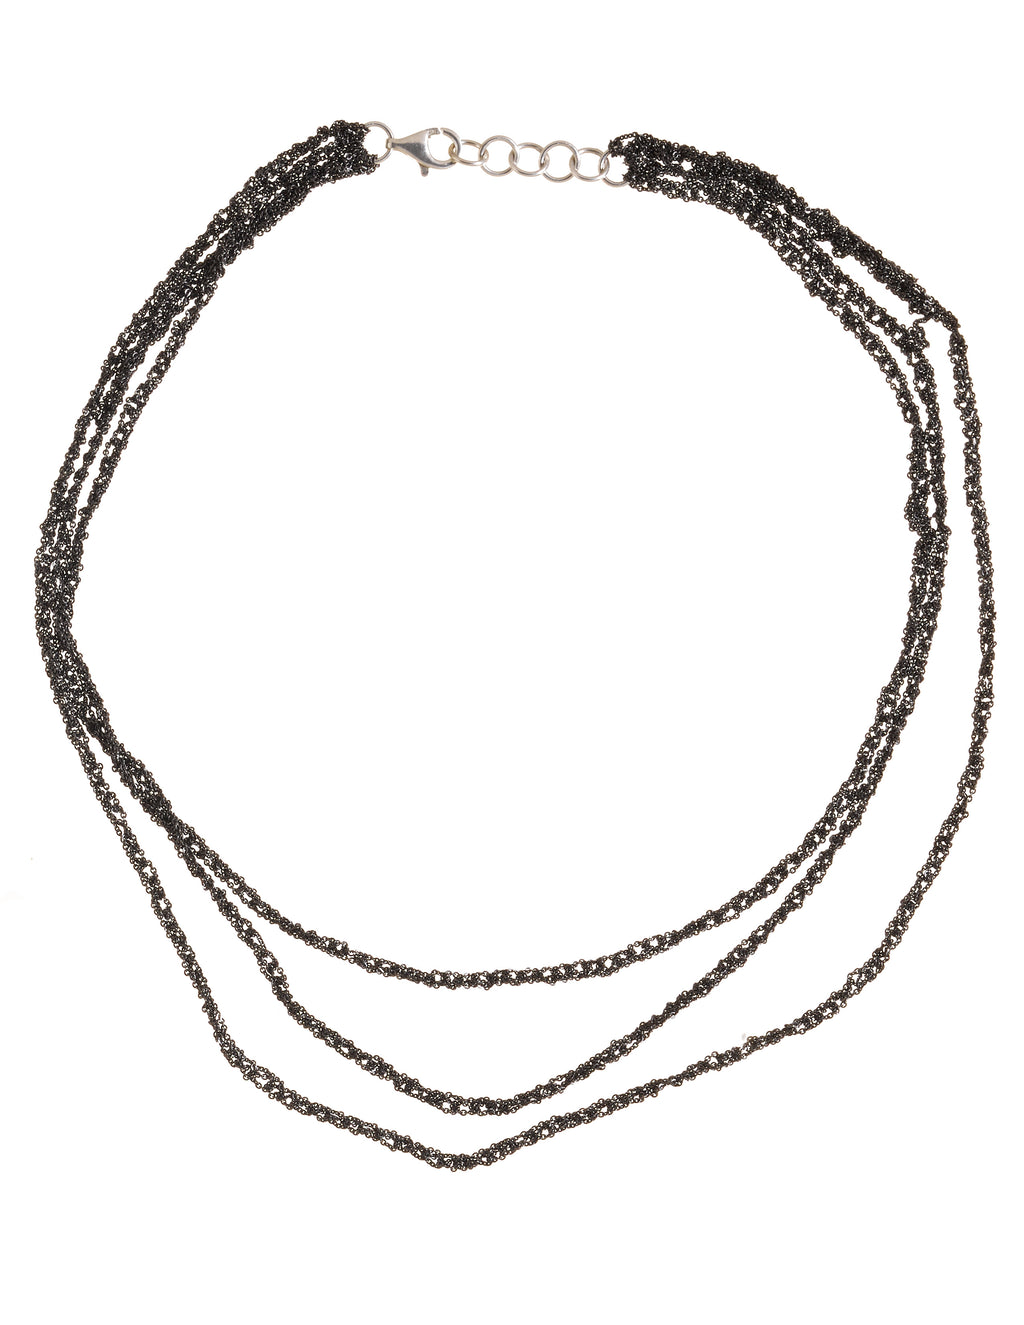 3-Tiered Simple Necklace in Charcoal